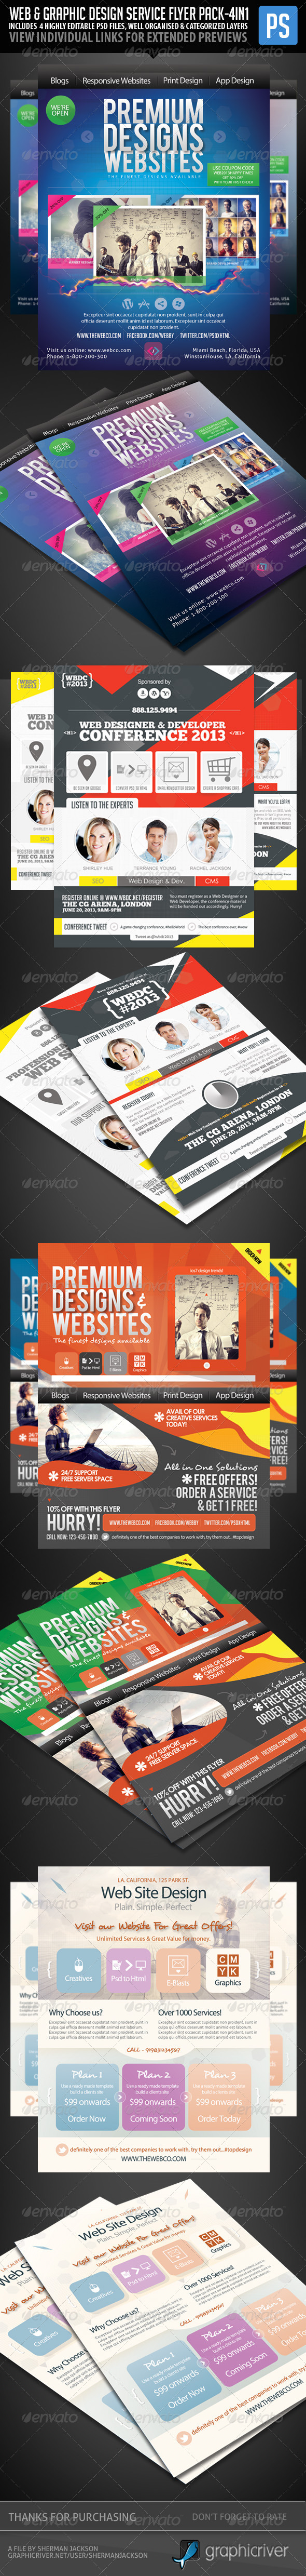 Web & Graphic Design Service Flyer Pack (4in1) - Commerce Flyers